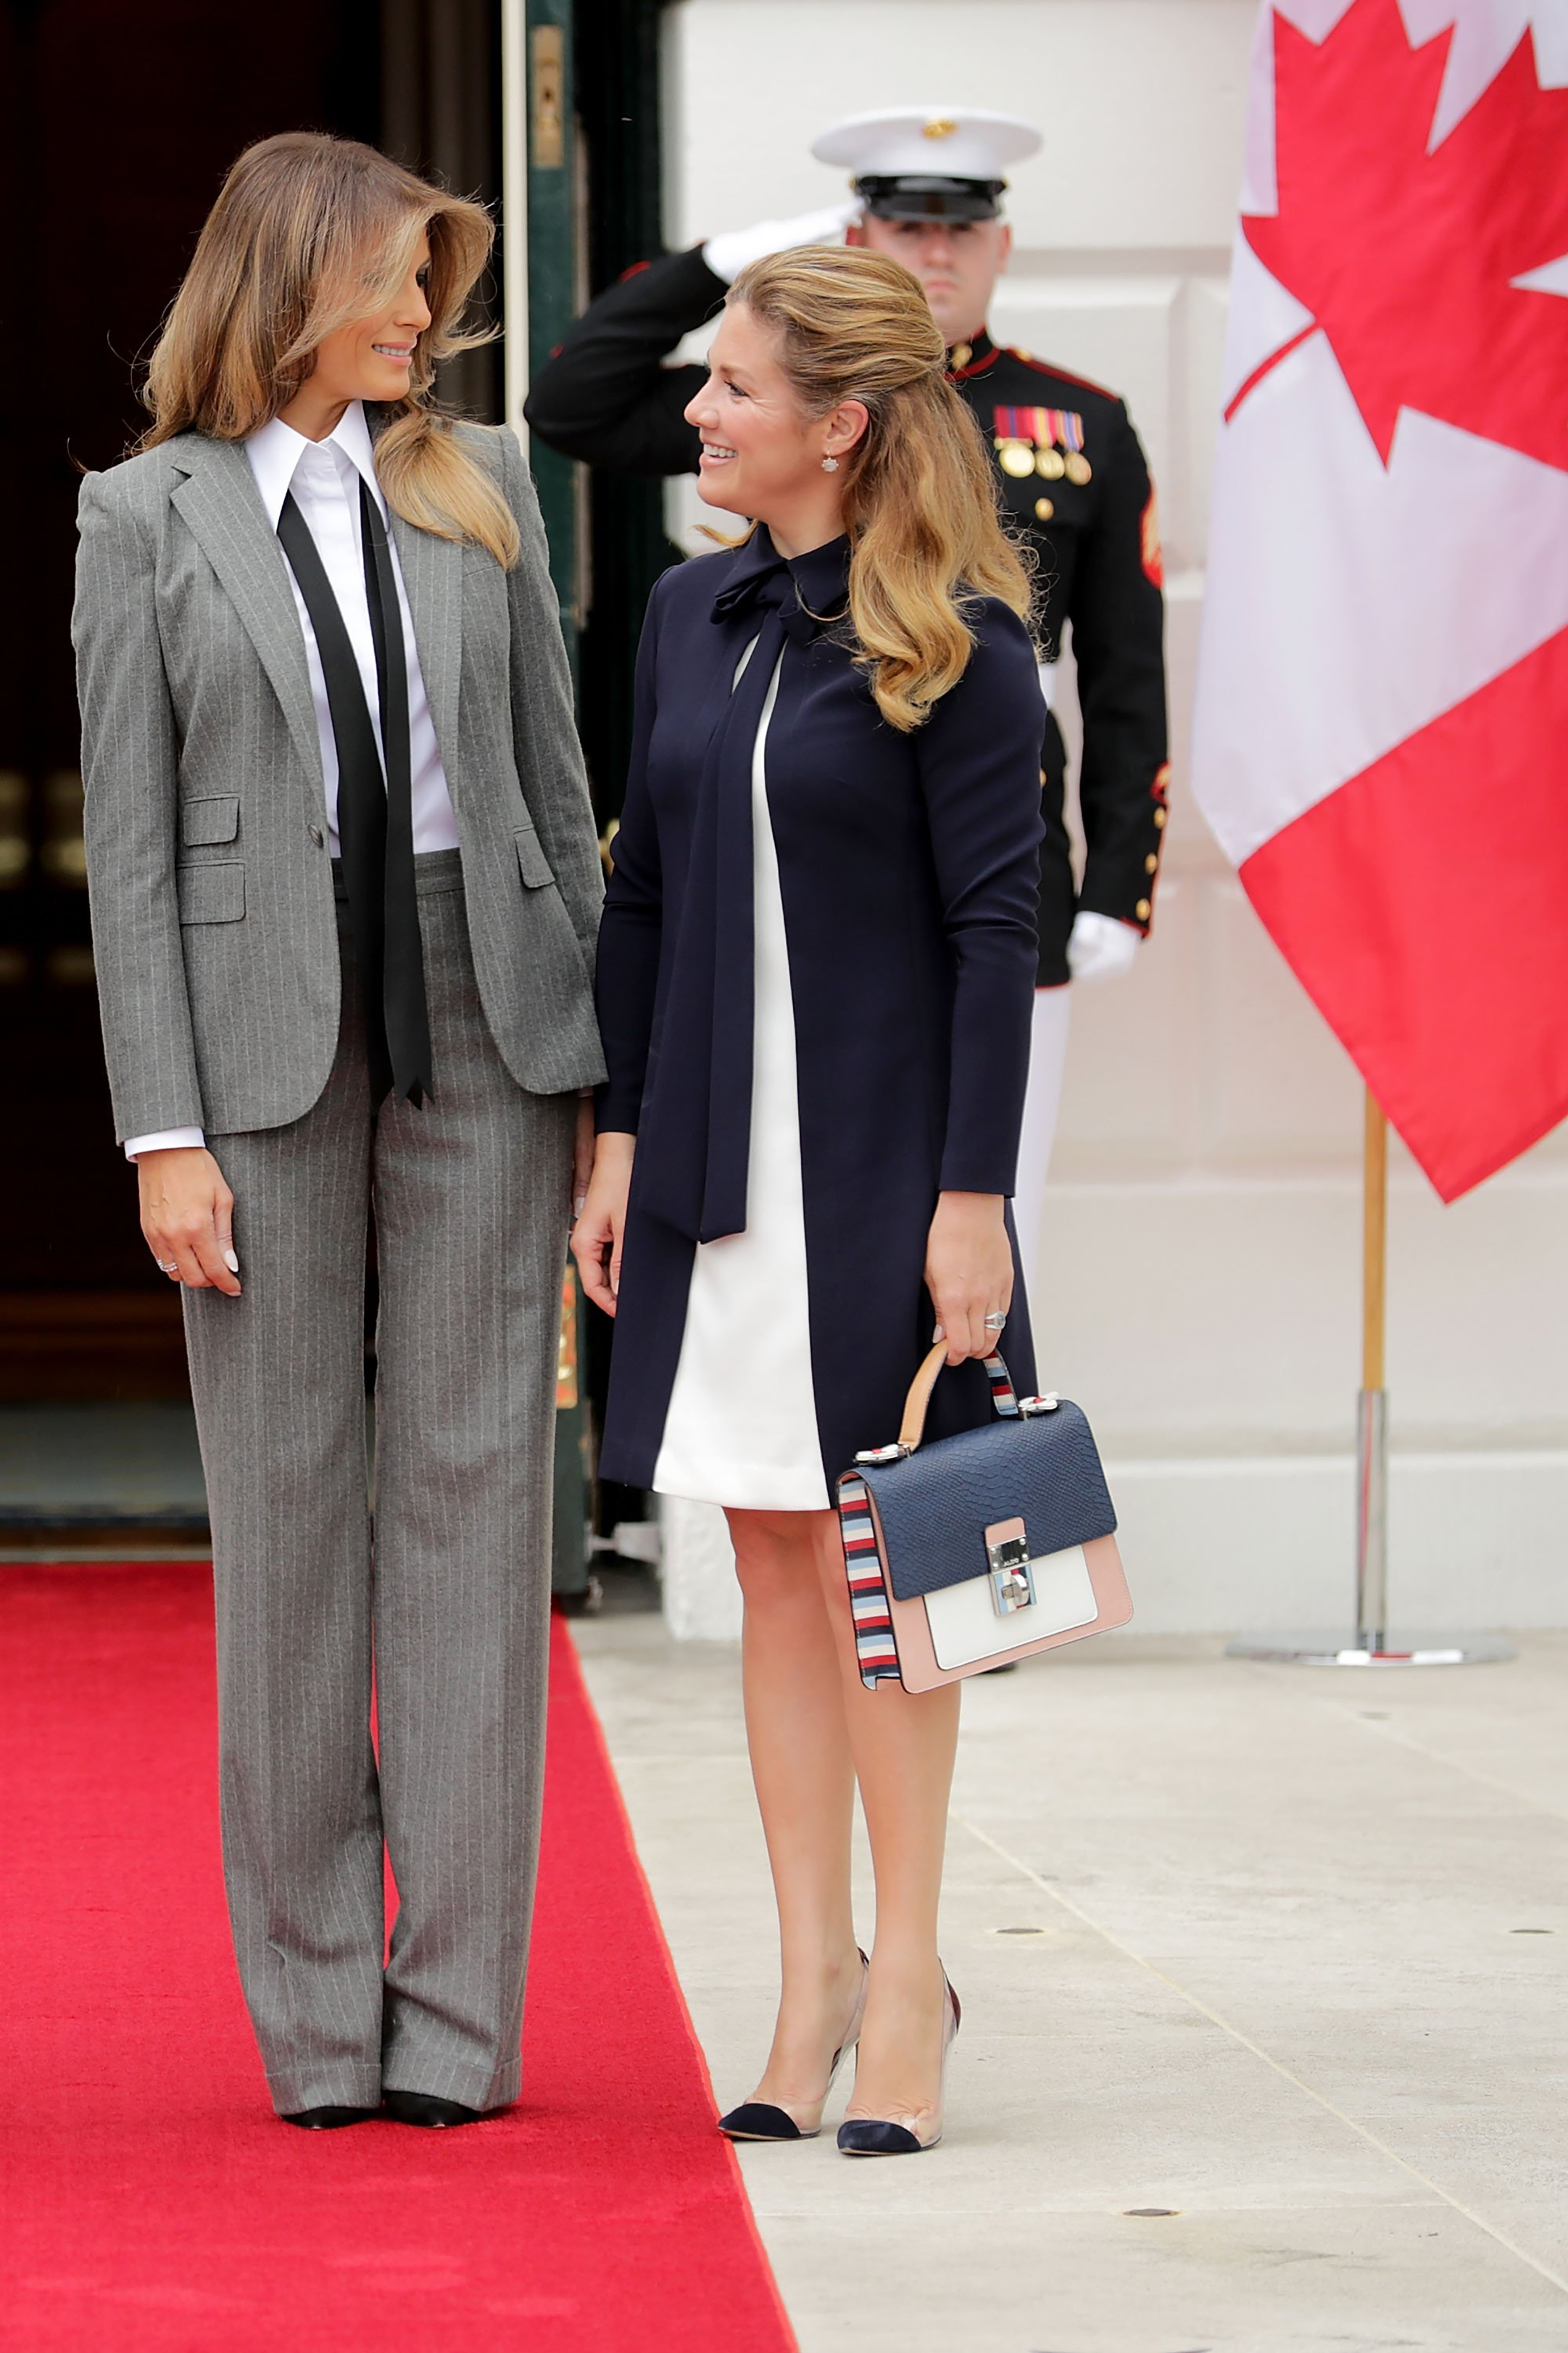 First lady Melania Trump (L) wearing grey pinstriped Ralph Lauren Collection suit, and Sophie Gregoire Trudeau pose for photographs at the White House Oct. 11, 2017 in Washington, D.C.